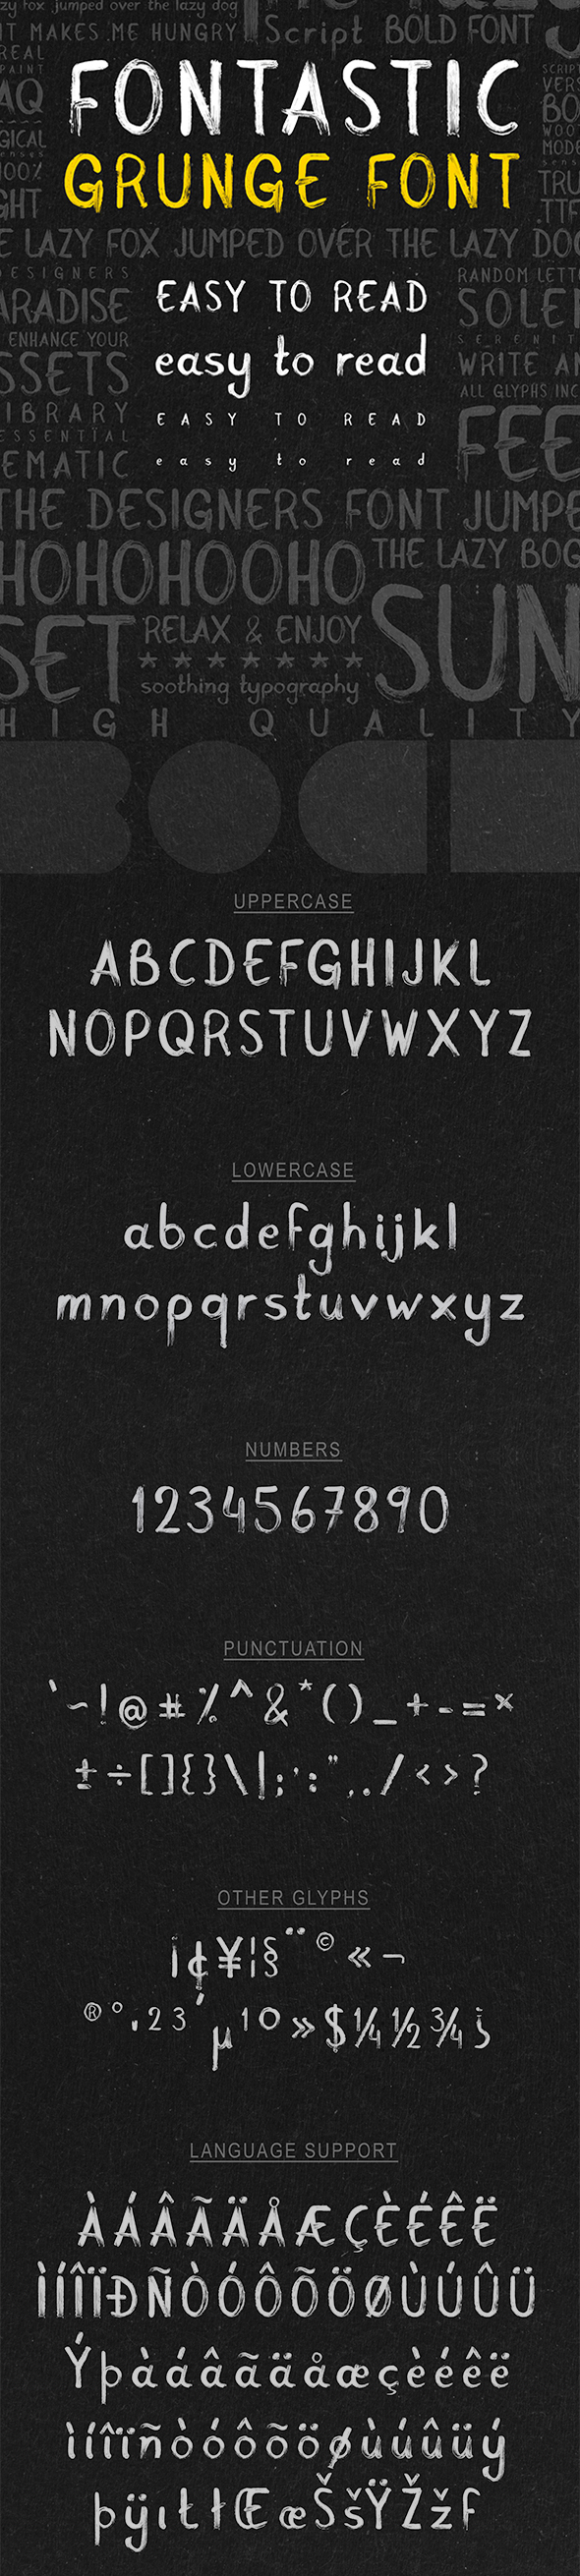 Font Astic - Real Paint Typeface - Sans-Serif Fonts